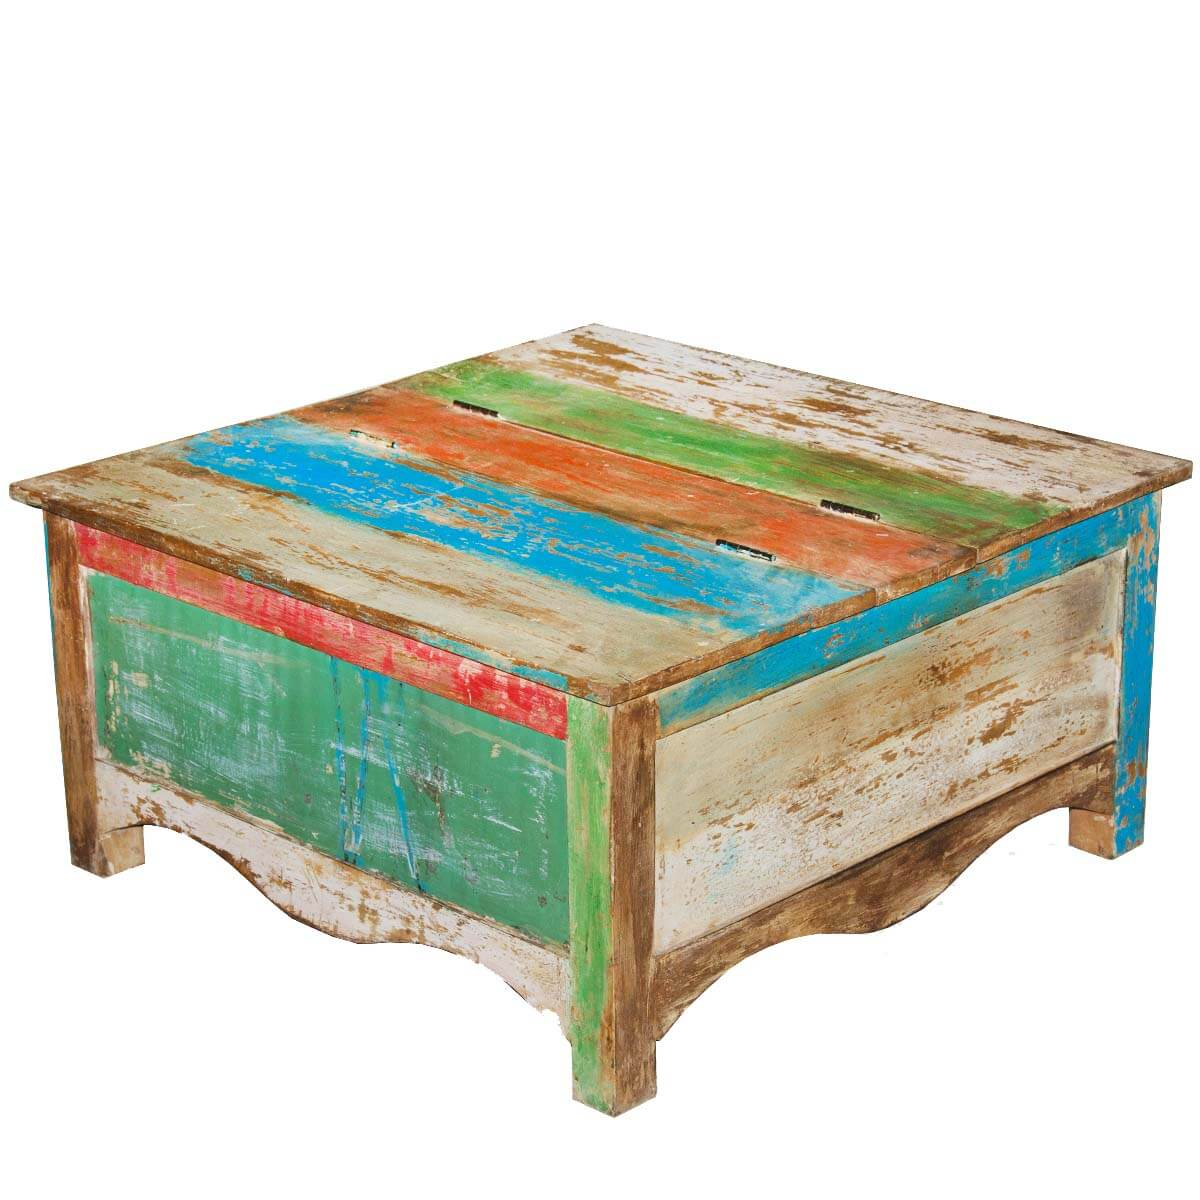 rainbow striped square reclaimed wood coffee table storage chest. Black Bedroom Furniture Sets. Home Design Ideas